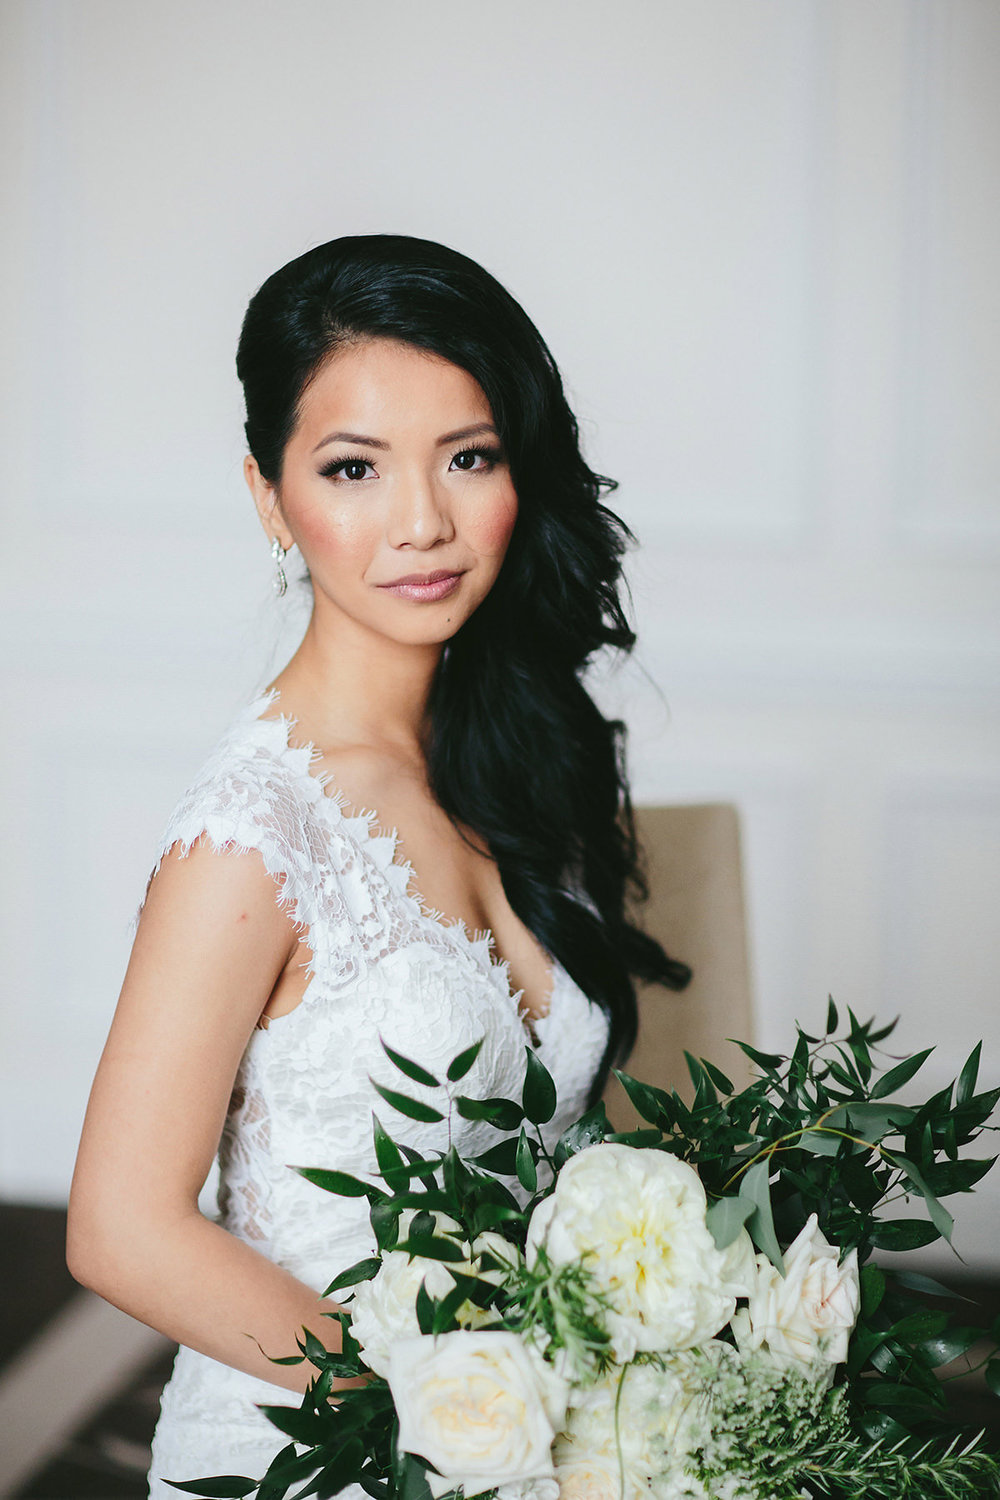 Vancouver Bride Featuring Jewelry by Elsa Corsi